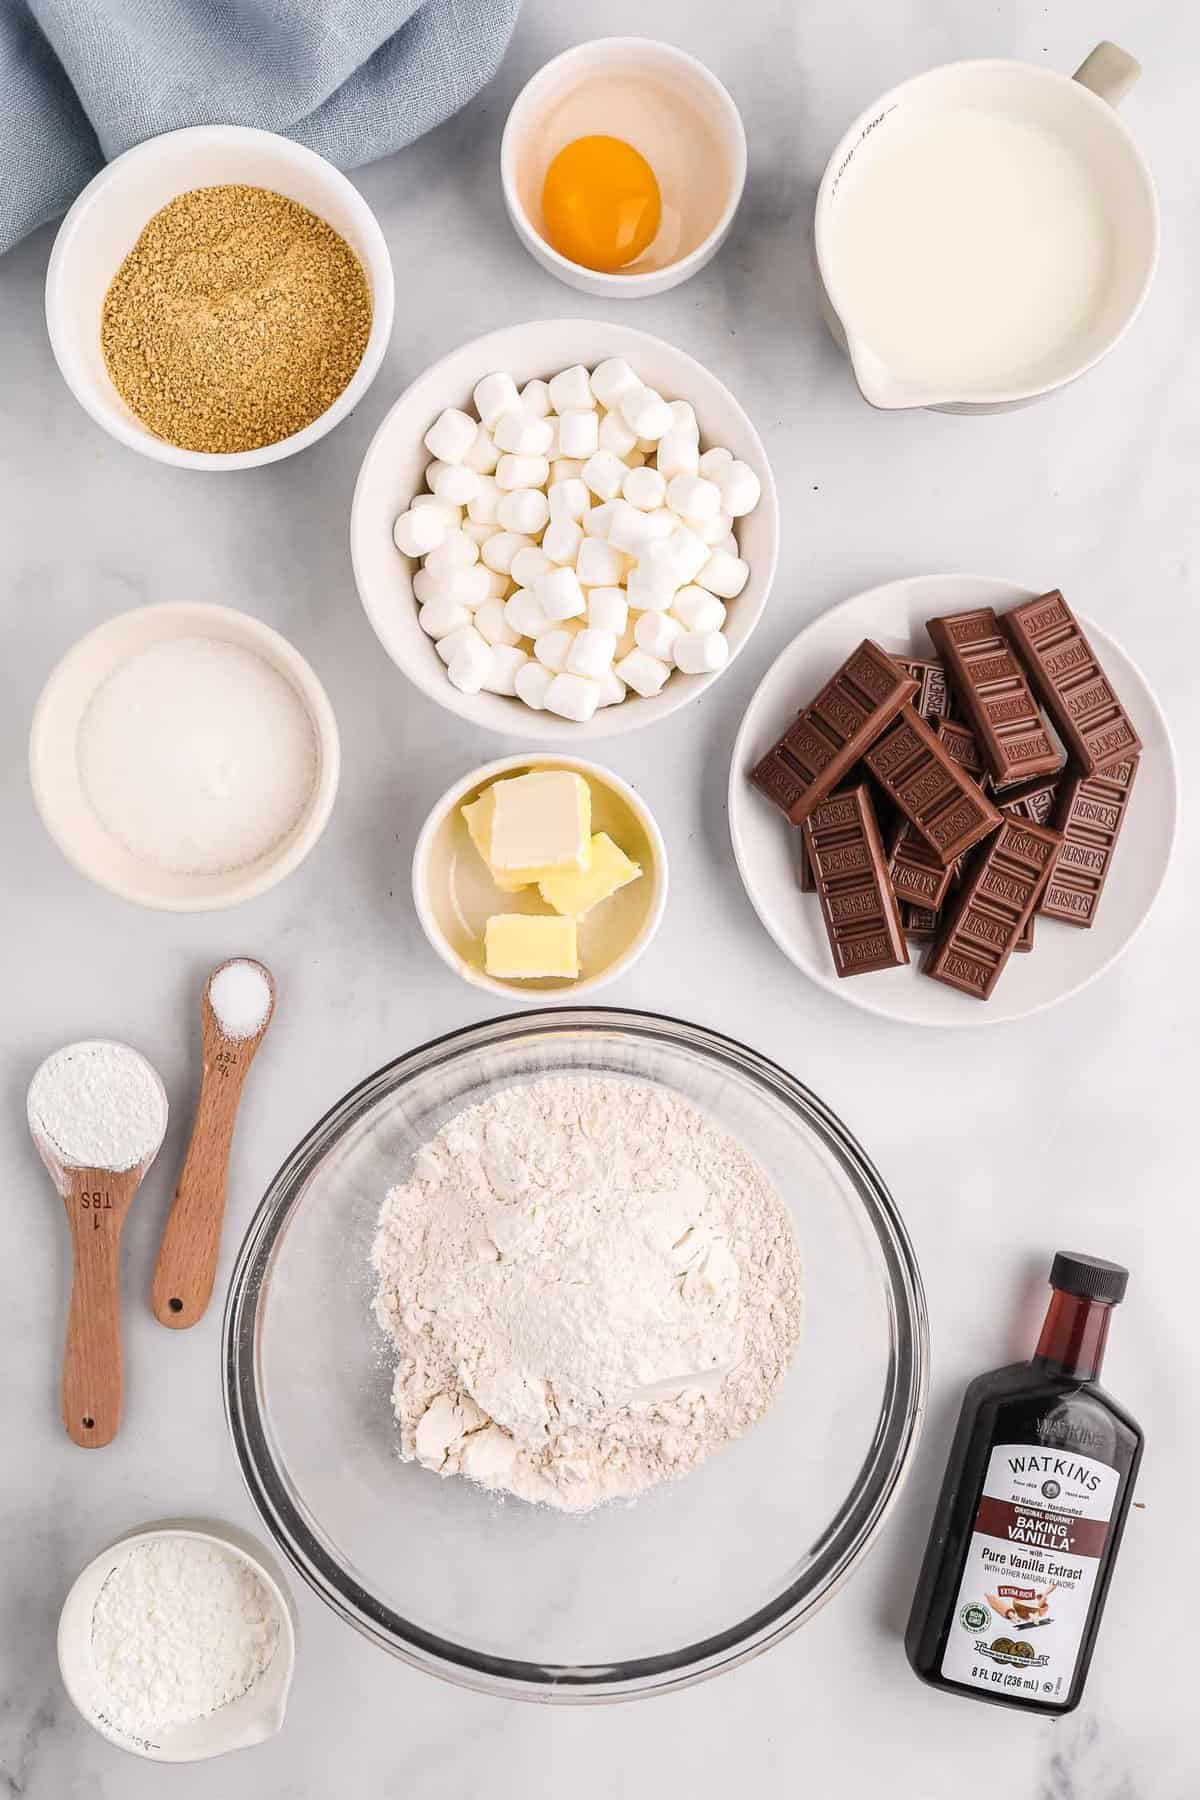 Overhead view of ingredients needed to make sheet pan pancakes, including chocolate bars, marshmallows, and graham cracker crumbs.